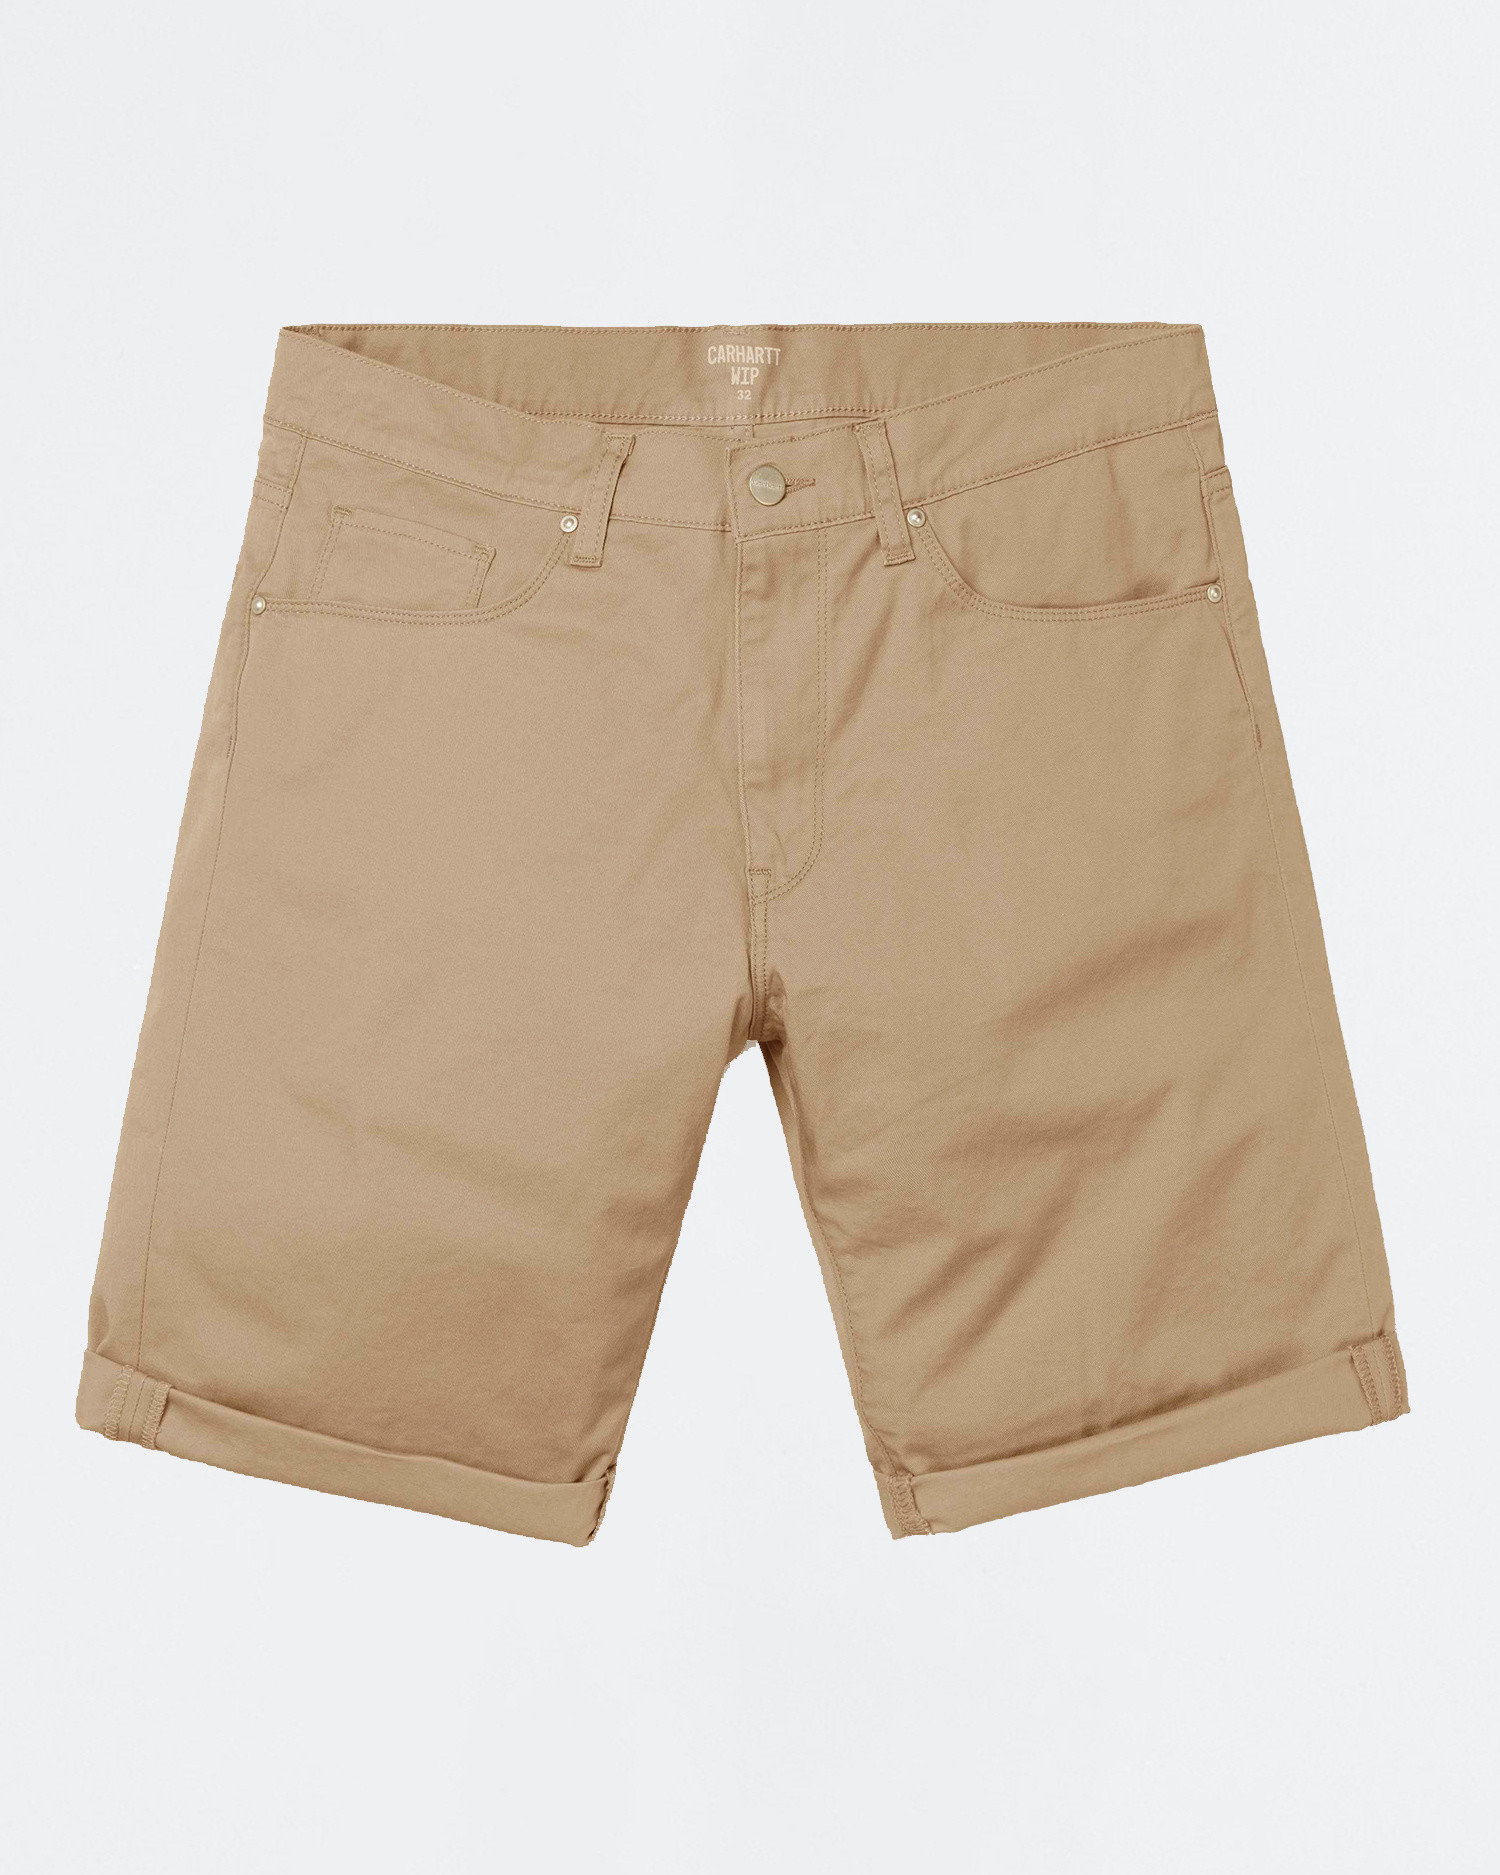 Carhartt Johnson Short Cotton Leather